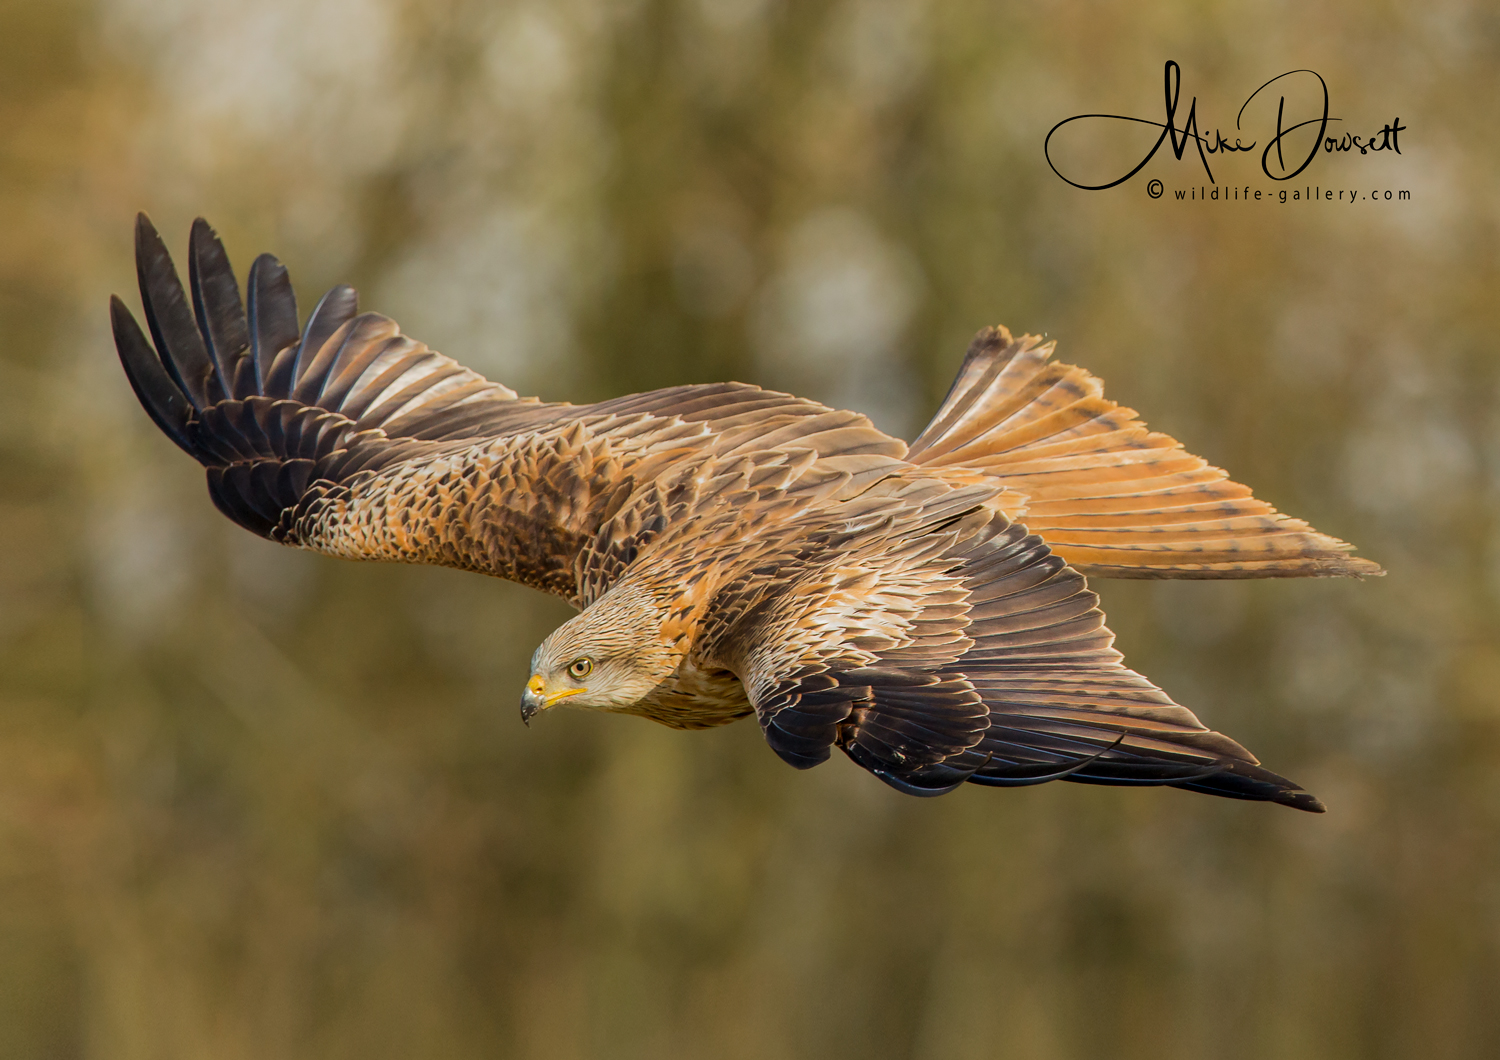 Red Kite: A beautiful Oxfordshire Red Kite flying through a River Meadow, with some golden evening sun light - a really beautiful raptor.